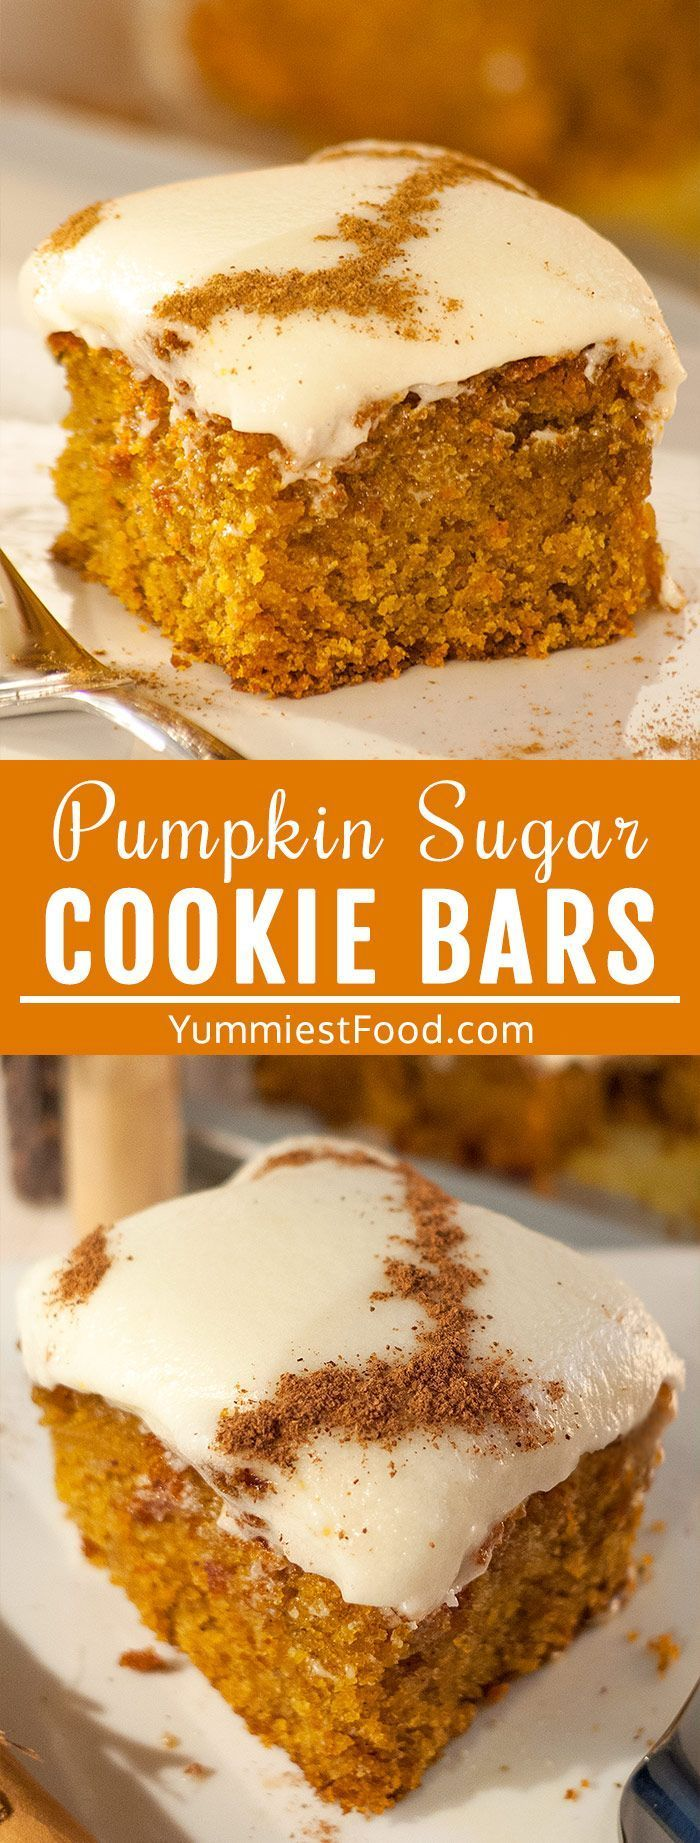 Pumpkin Sugar Cookie Bars with Cream Cheese Frosting